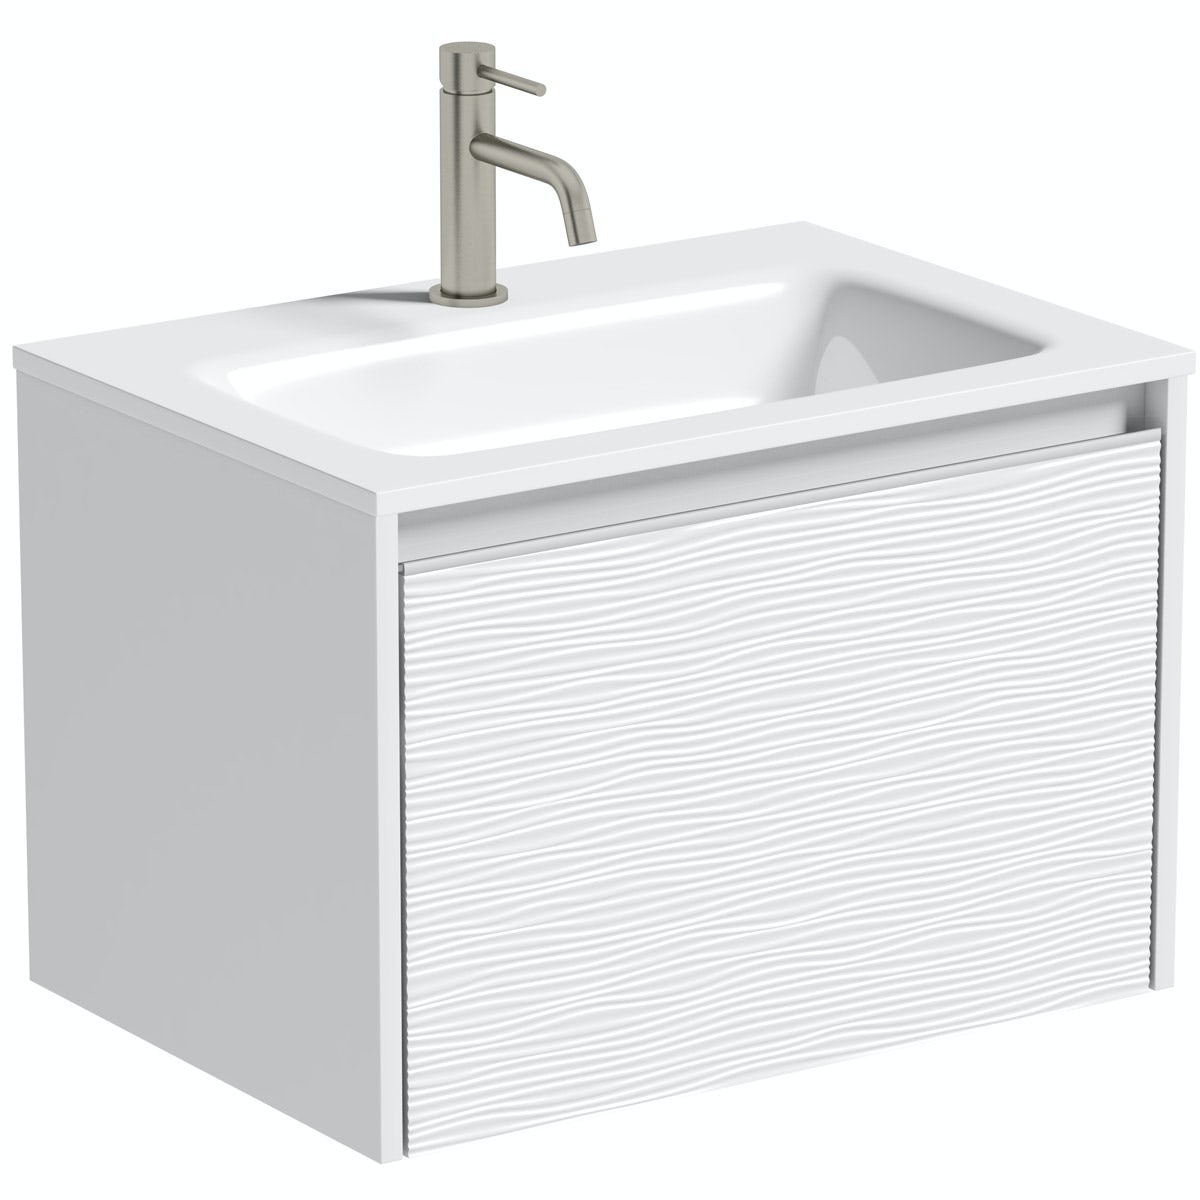 Mode Banks matt white wall hung vanity unit and basin 600mm